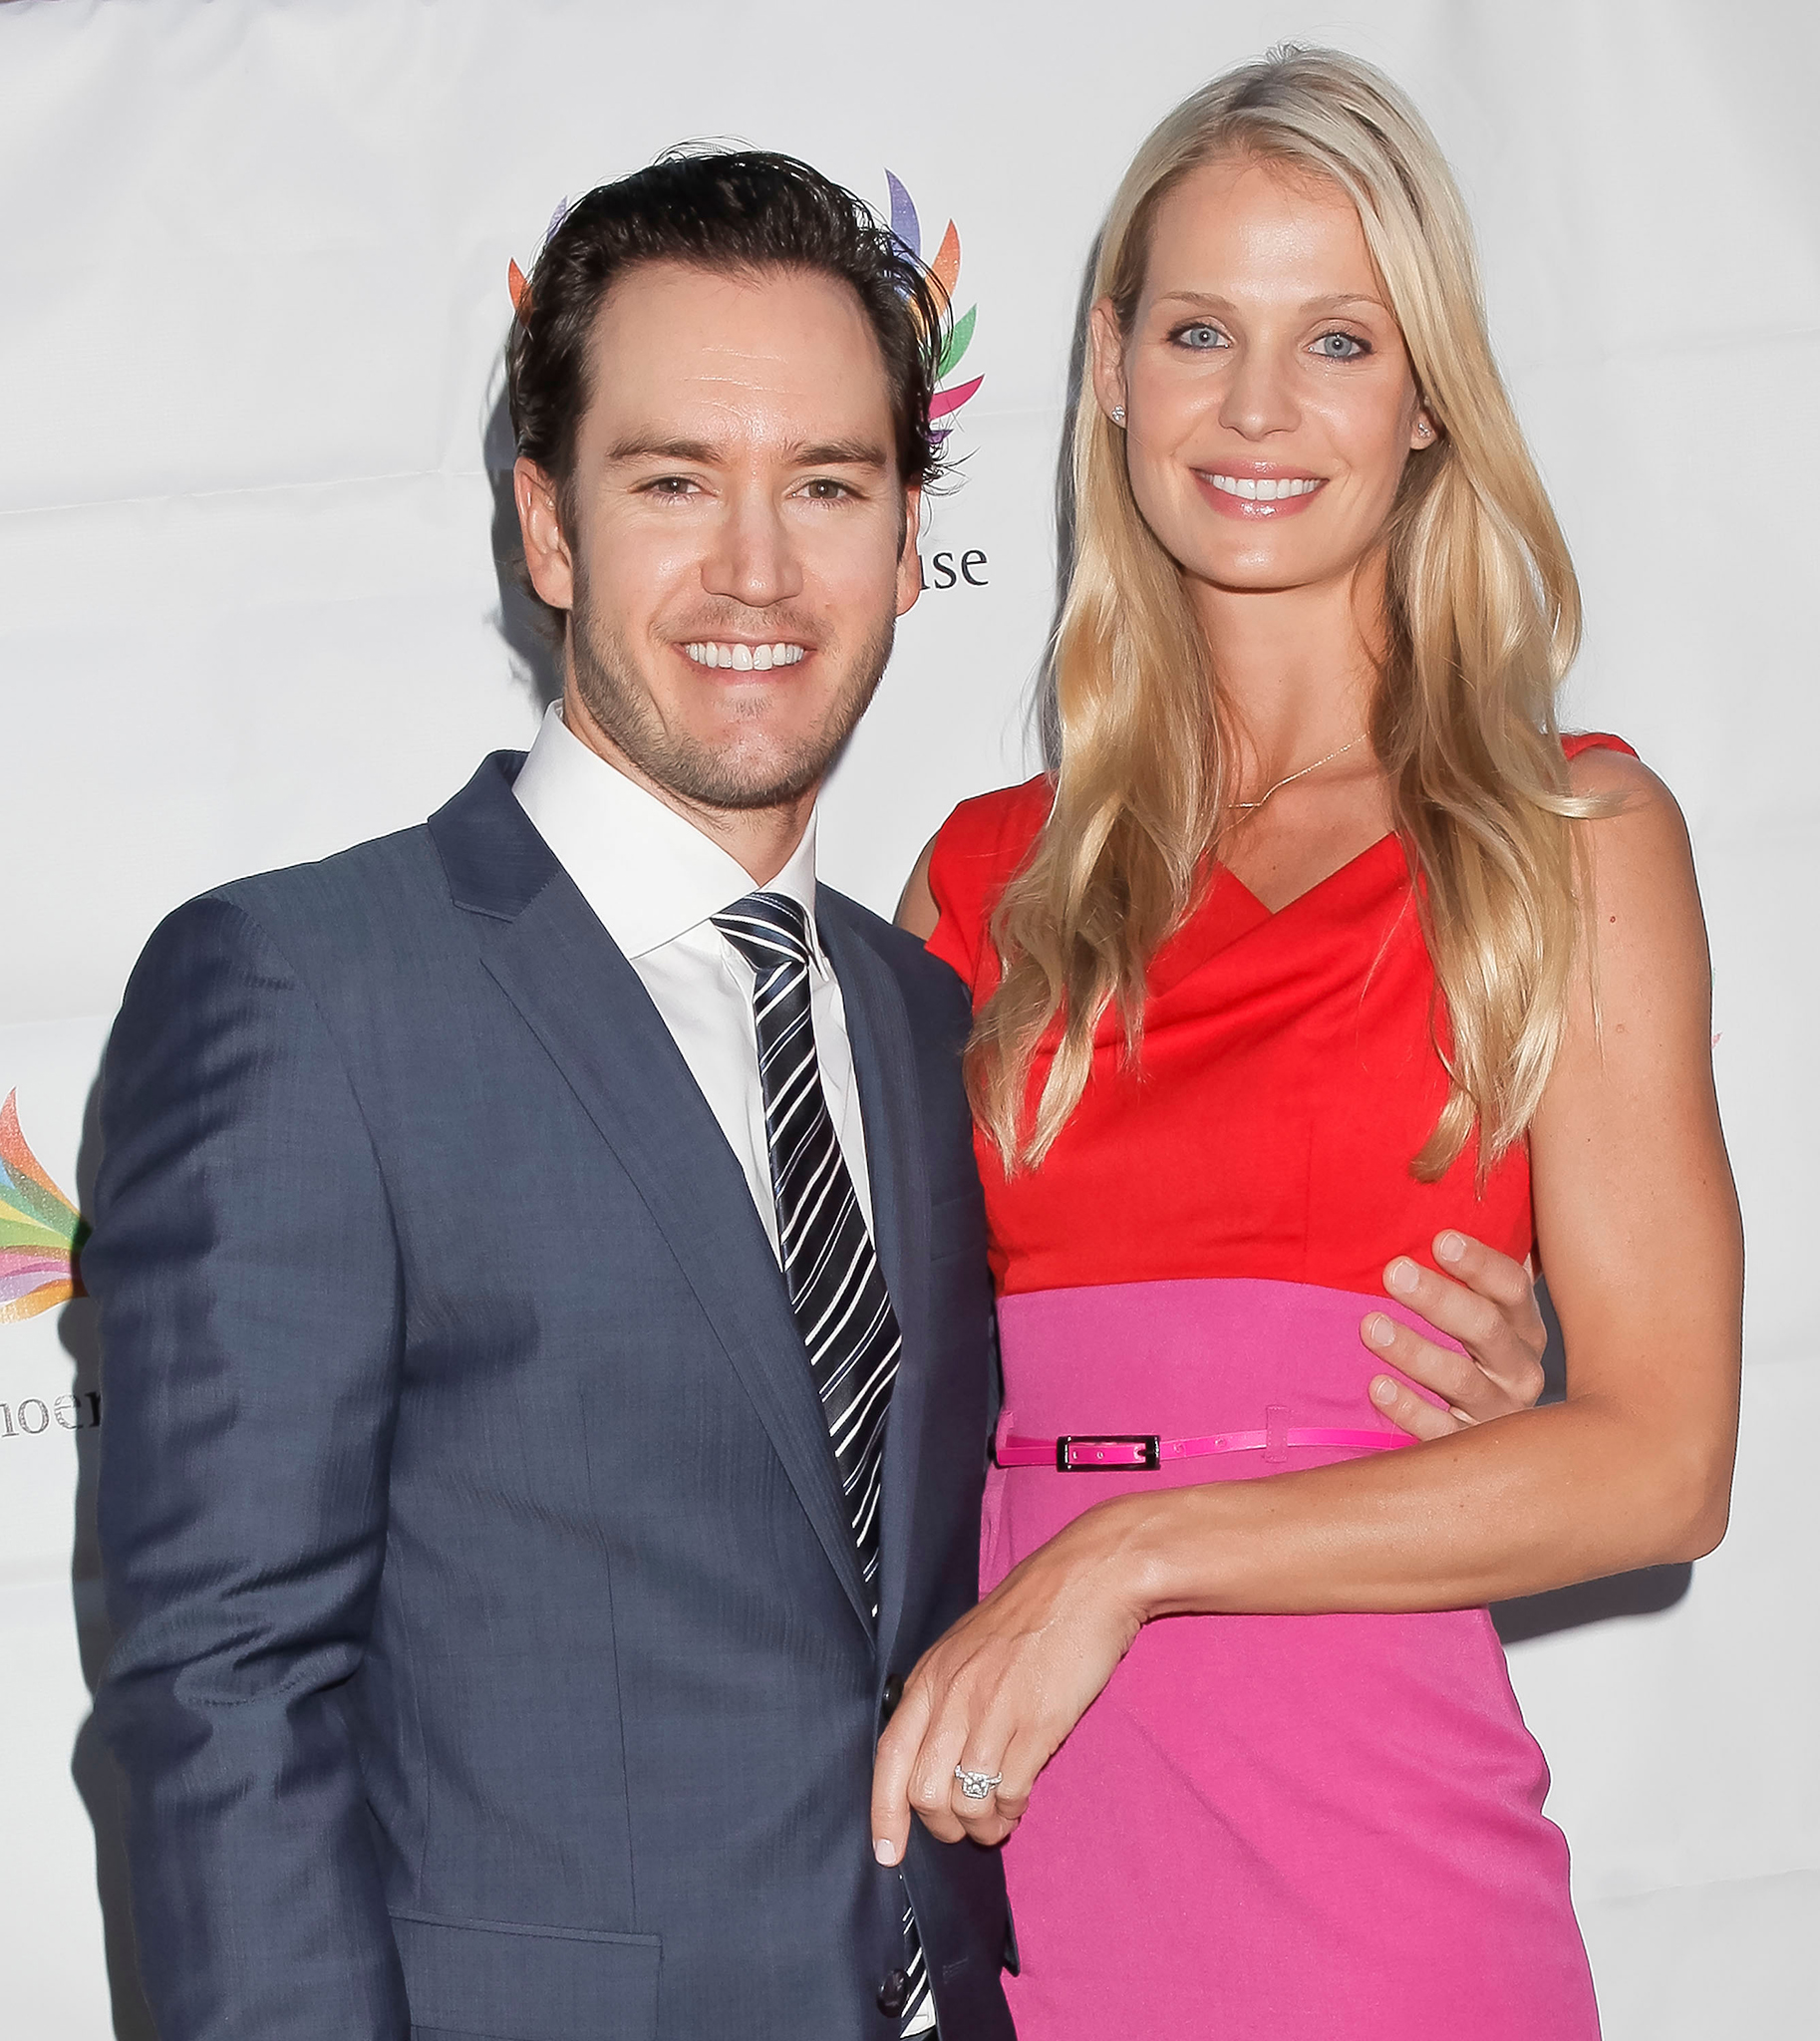 Mark-Paul Gosselaar and his wife, Catriona McGinn. (Getty)